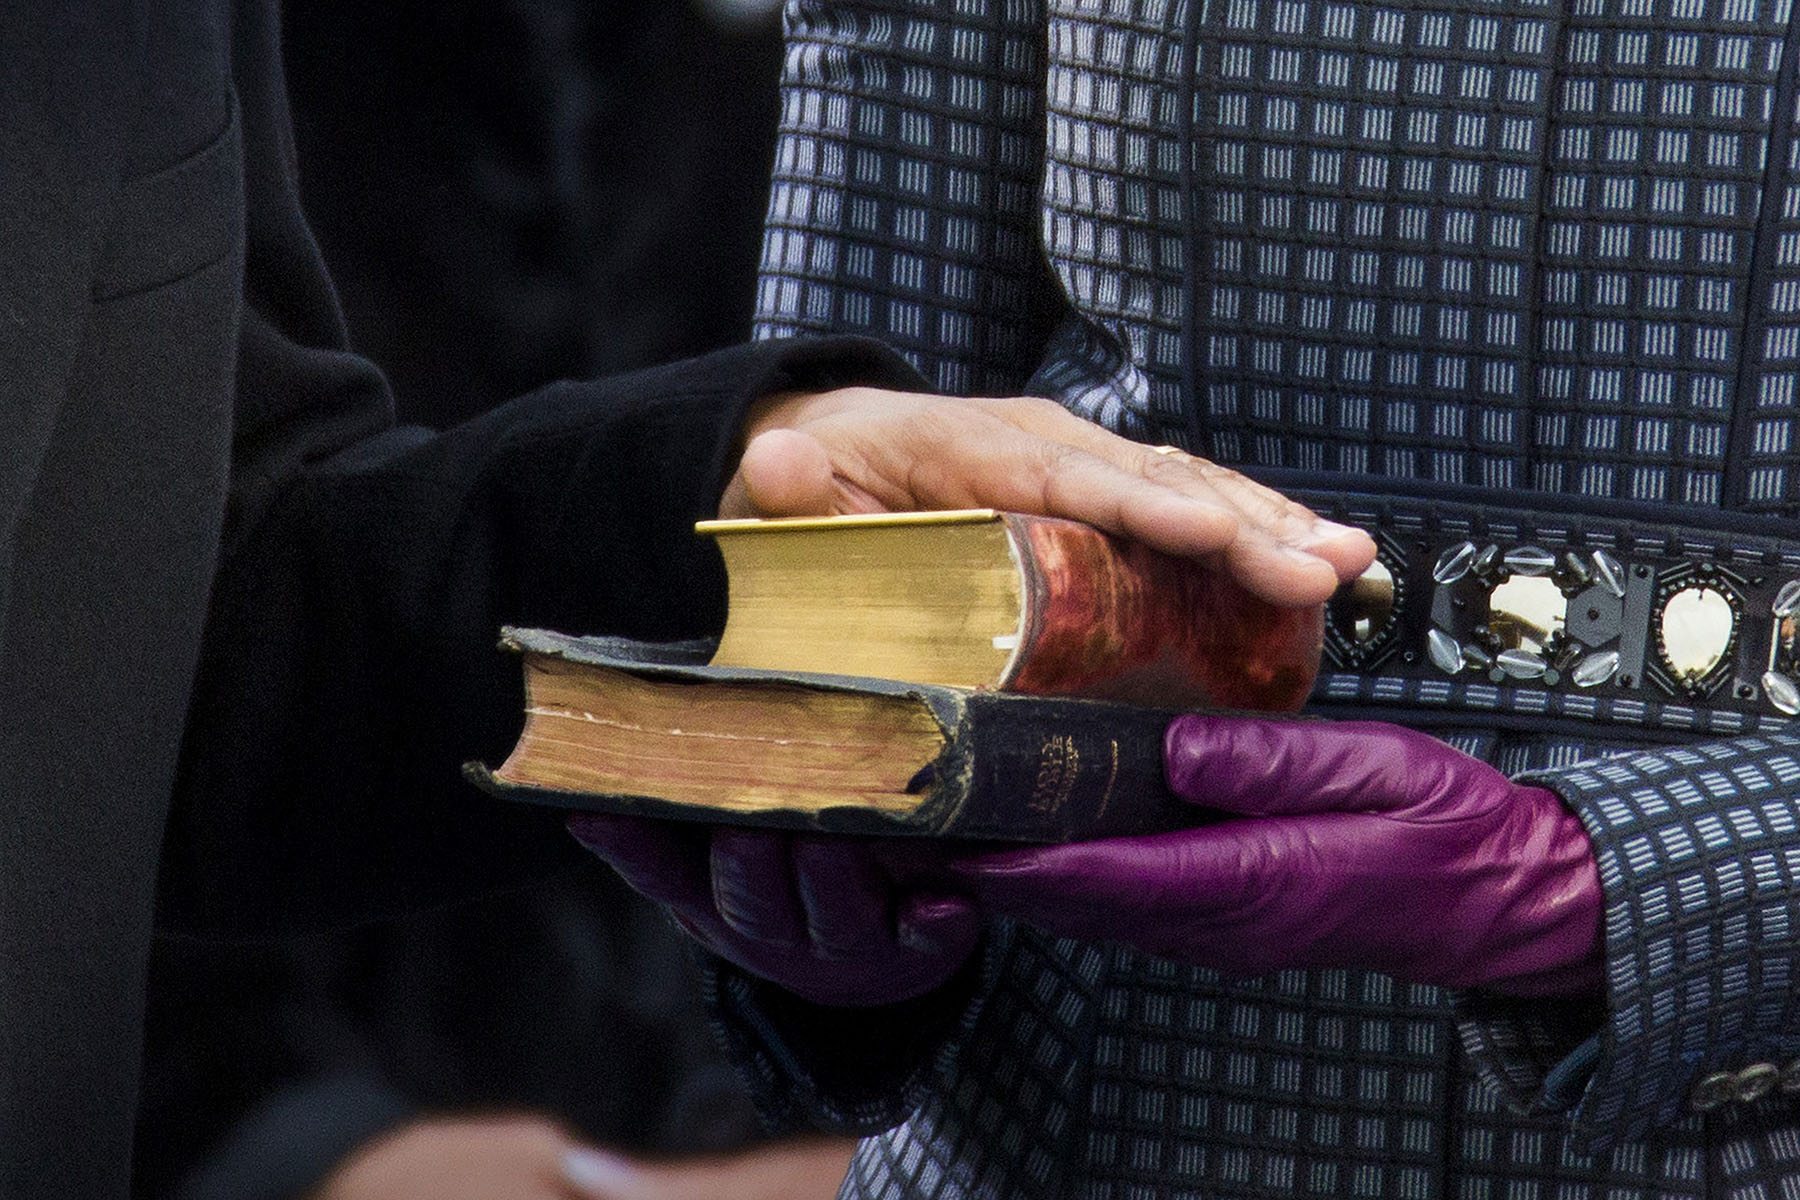 U.S. President Barack Obama places his hand on two bibles as held by first lady Michelle Obama as his recites the oath of office during swearing-in ceremonies on the West front of the U.S Capitol in Washington.  The first is the Bible used by former President Abraham Lincoln,  when he took the oath of office in 1861.  The second Bible is the so-called {quote}traveling Bible{quote} used by slain civil rights leader Martin Luther King, Jr.